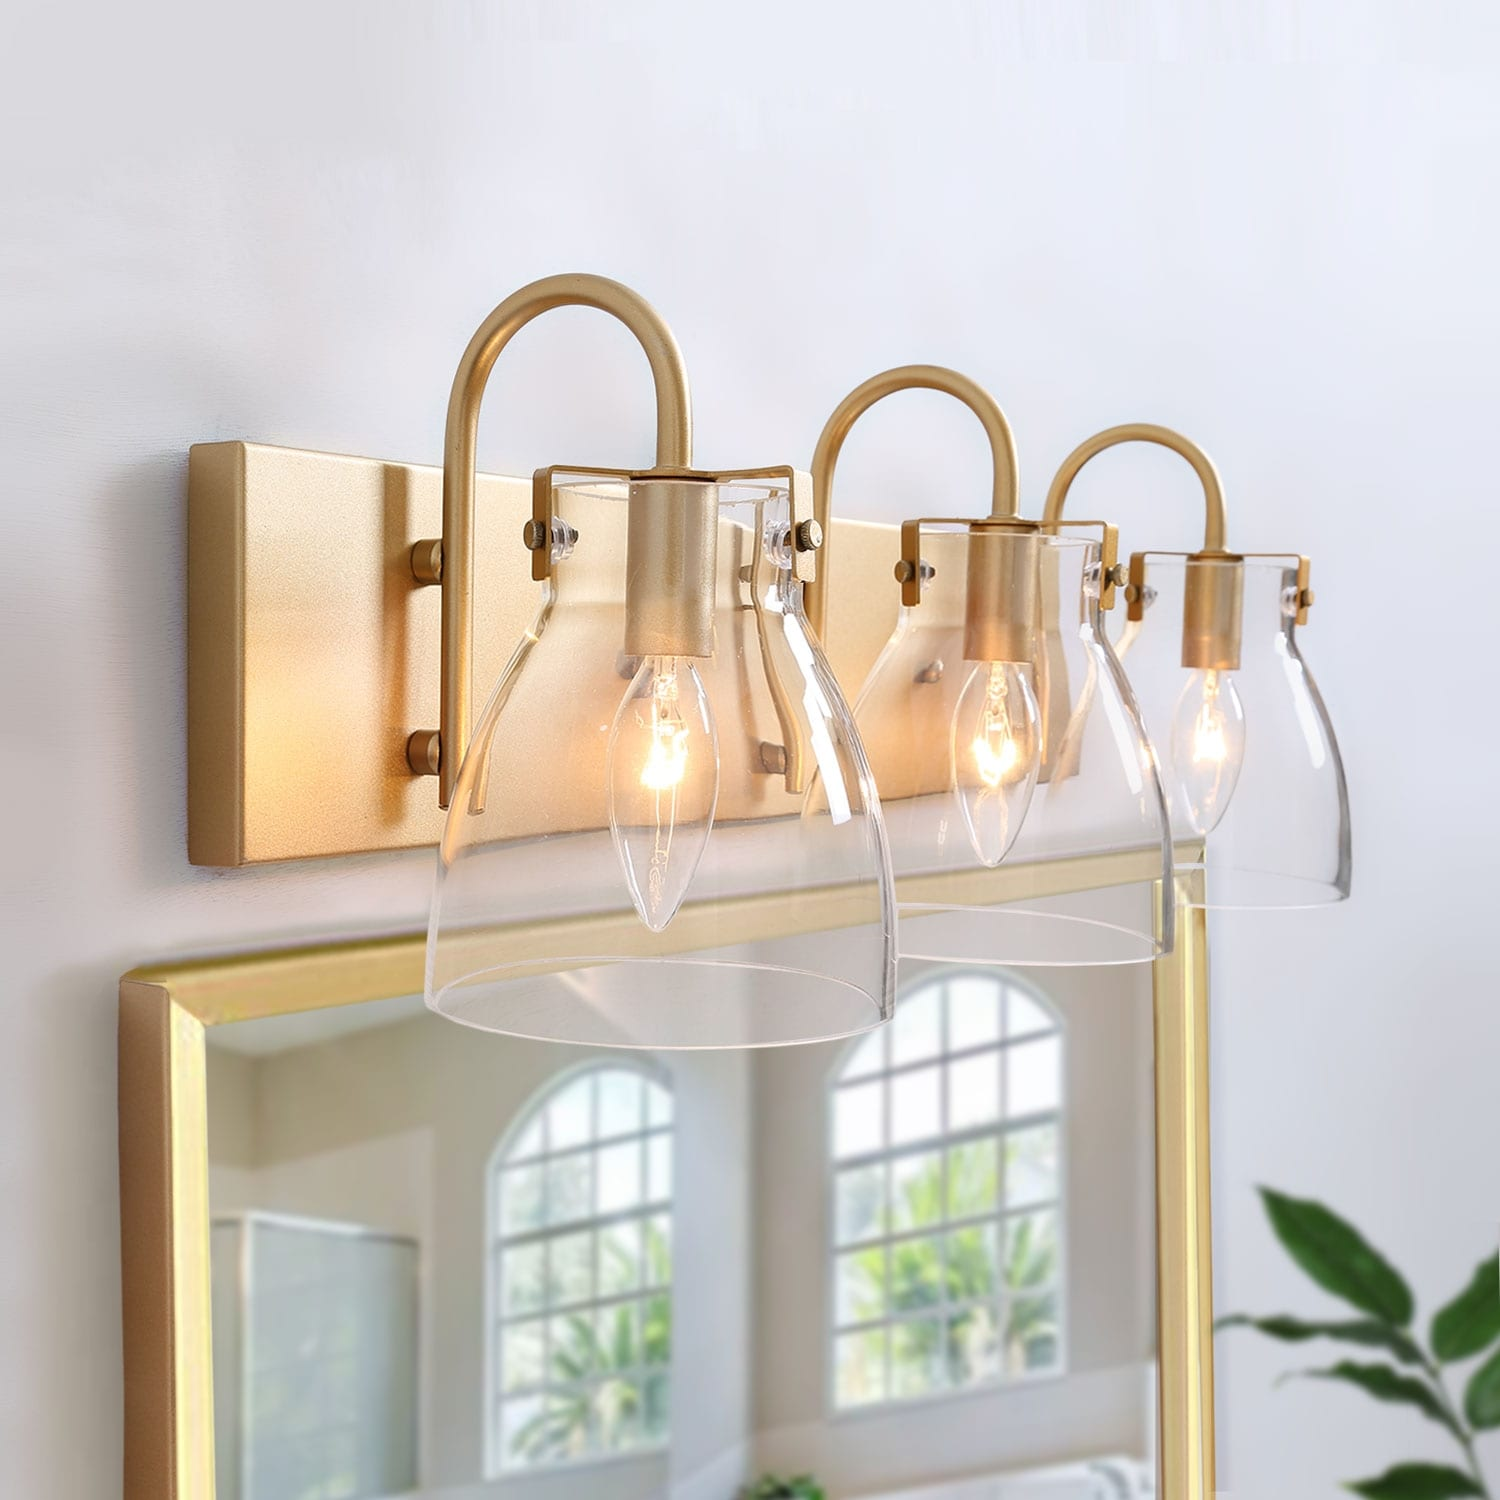 Modern Golden Finish 3 Lights Bathroom Vanity Lighting Glass Wall Sconce For Powder Room L22 X H8 X E7 On Sale Overstock 30096929